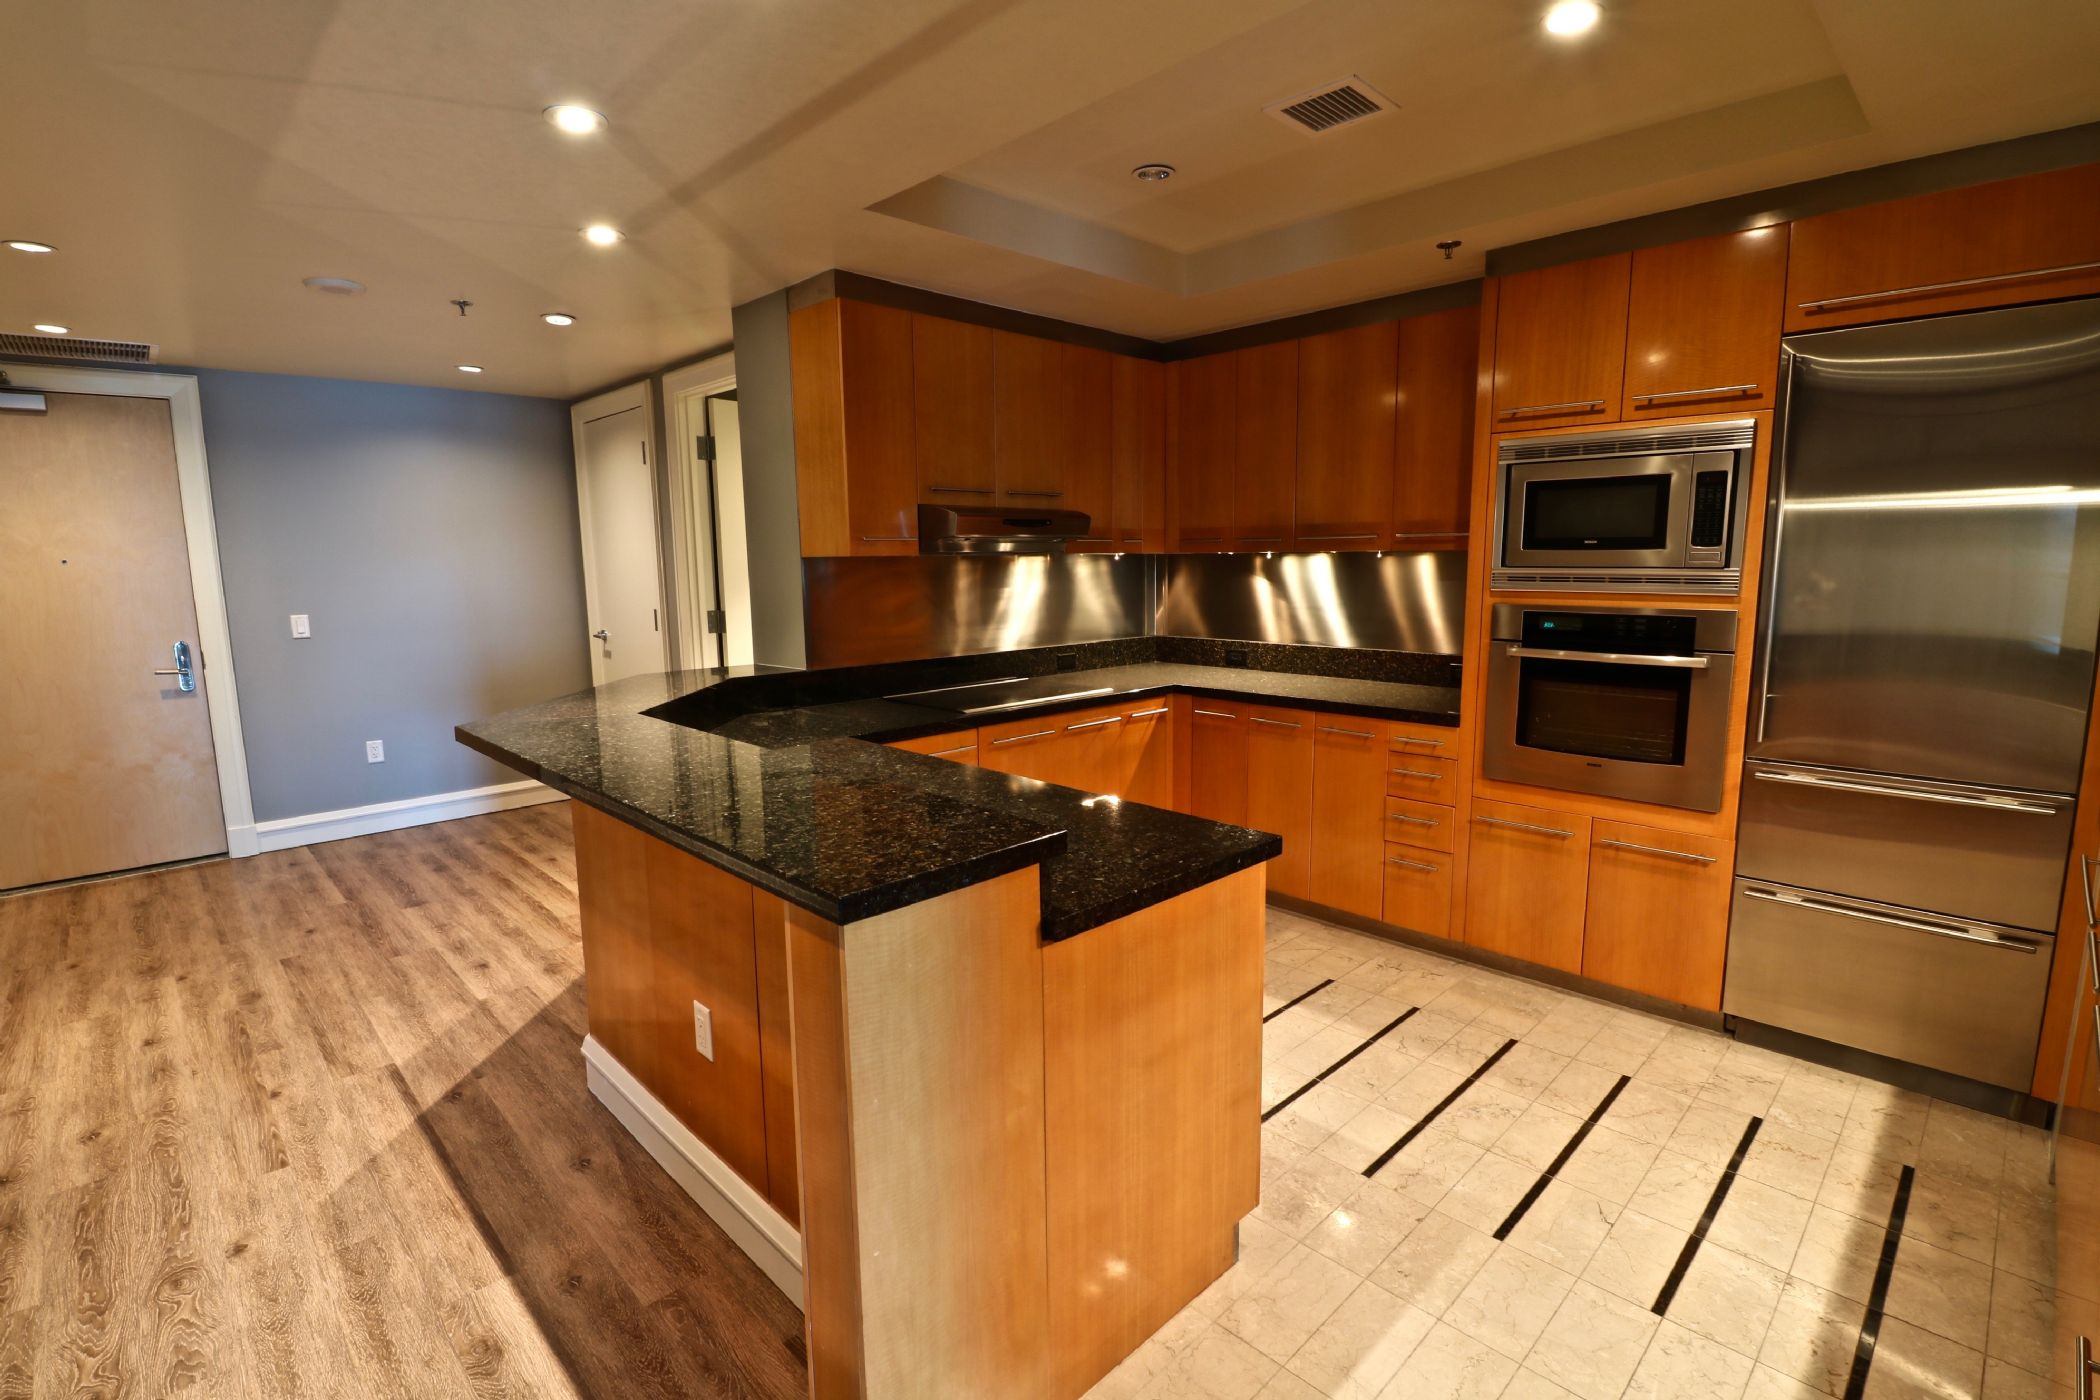 kitchen countertops las vegas design ideas images view luxury high rise rentals listed by the